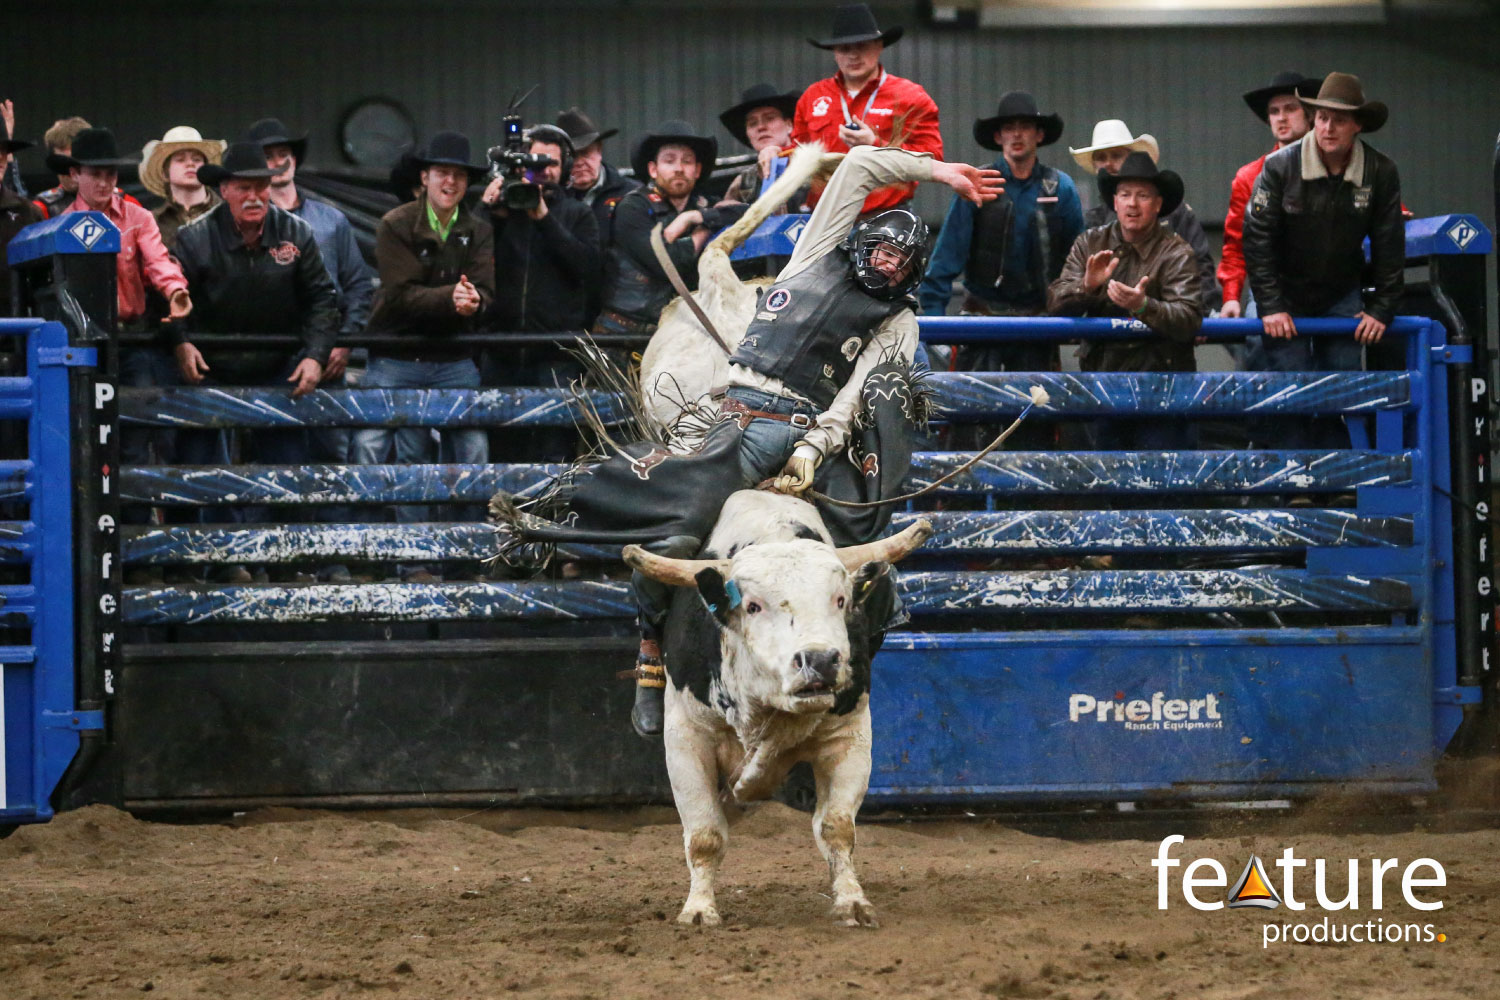 bull-riding-video-production-chad-besplug-invitational-claresholm-feature-productions-logo.jpg